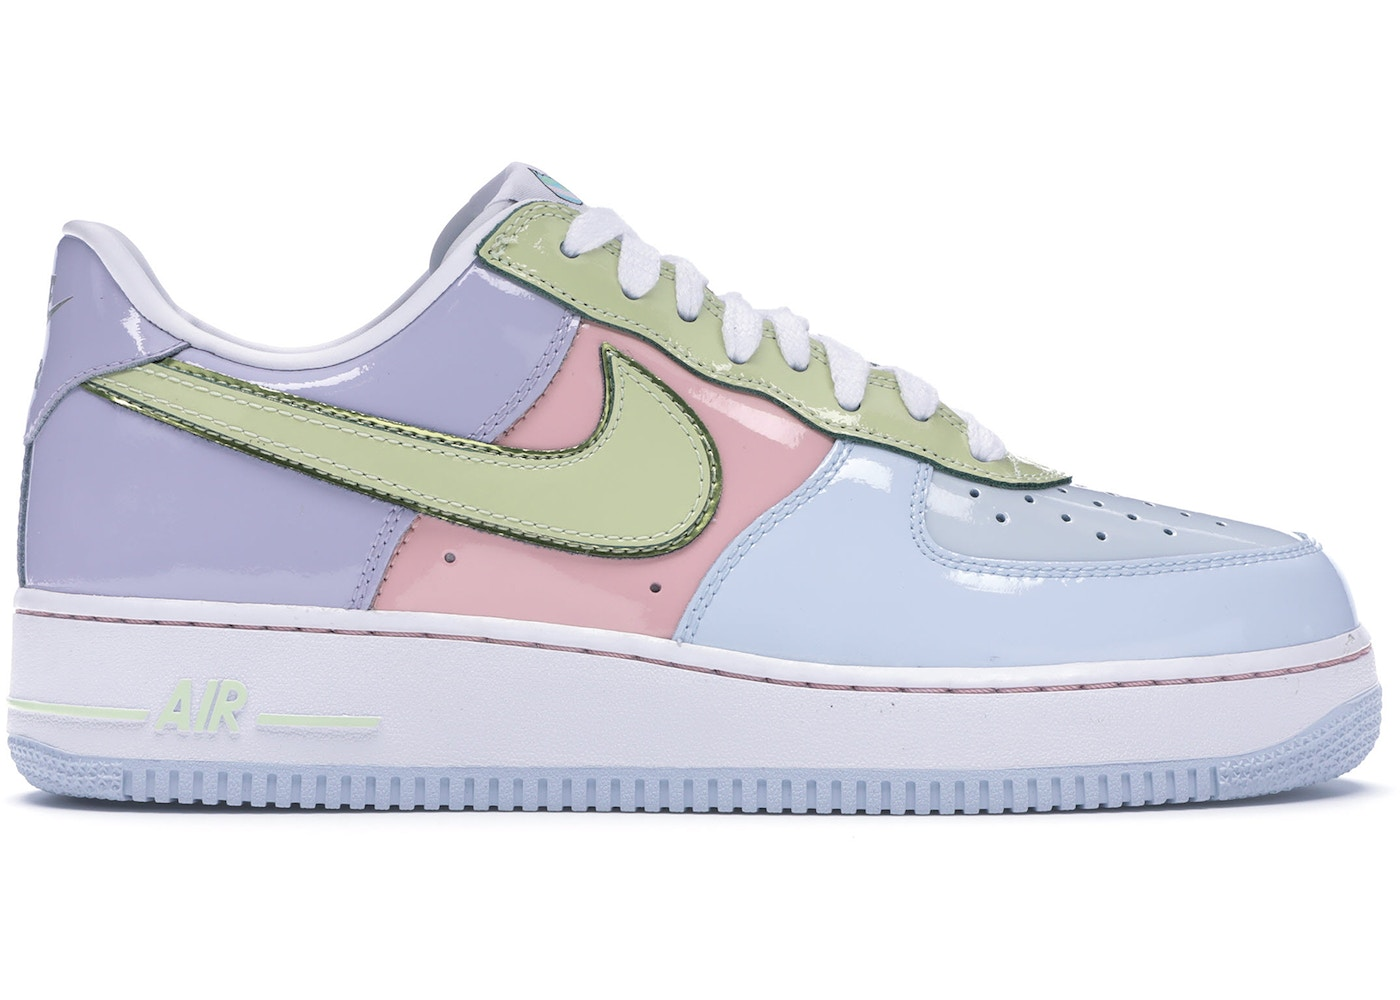 new style b93be 706a6 Air Force 1 Low Easter 2017